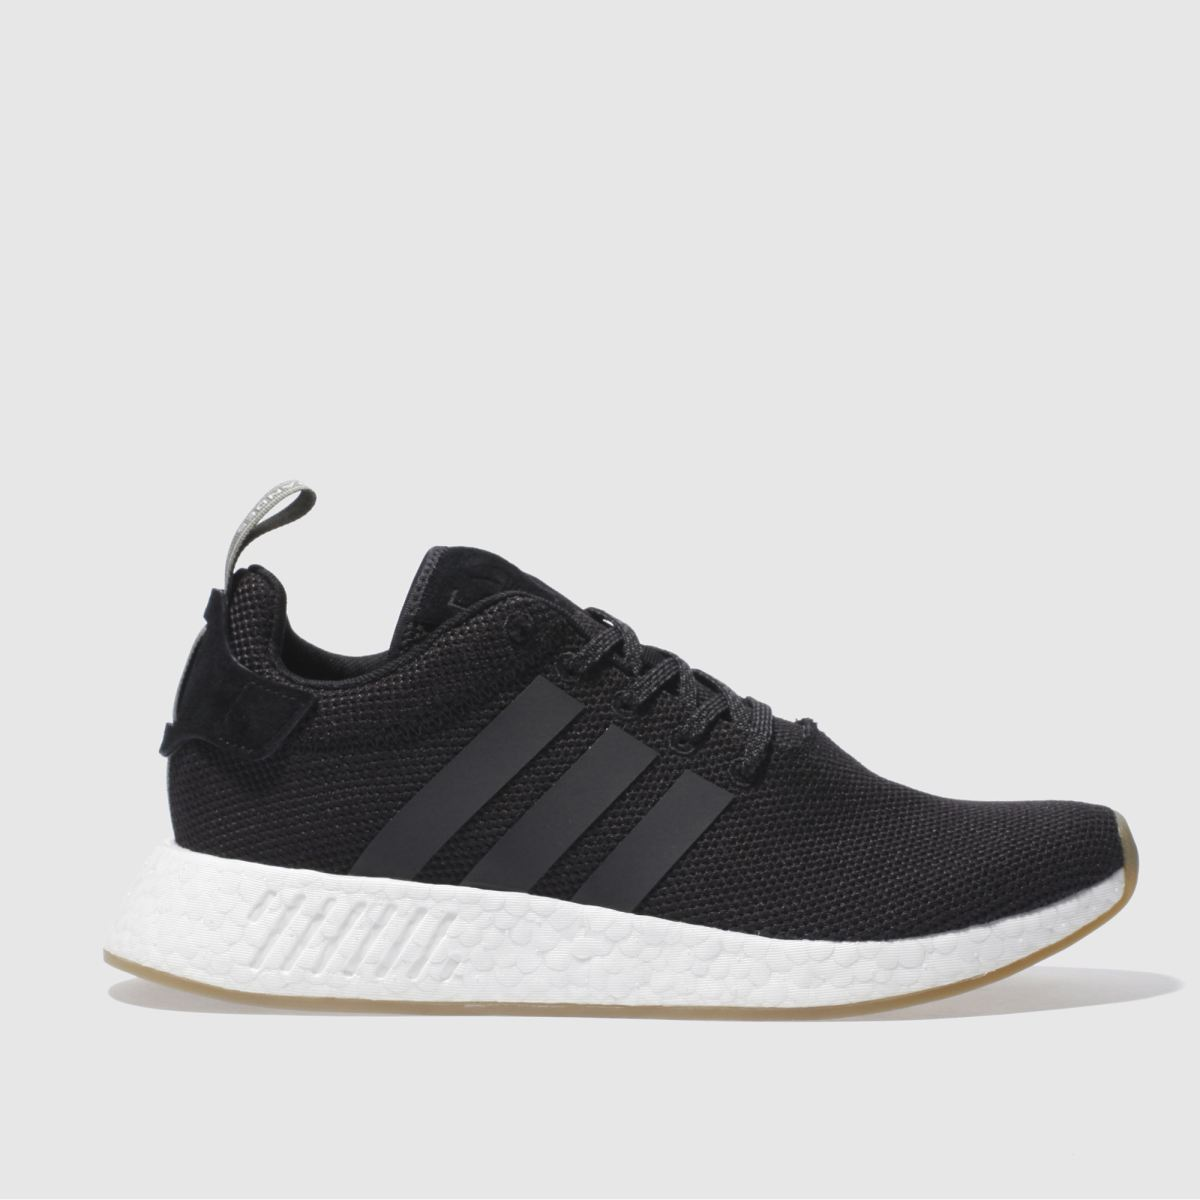 Adidas Black Nmd_r2 Trainers